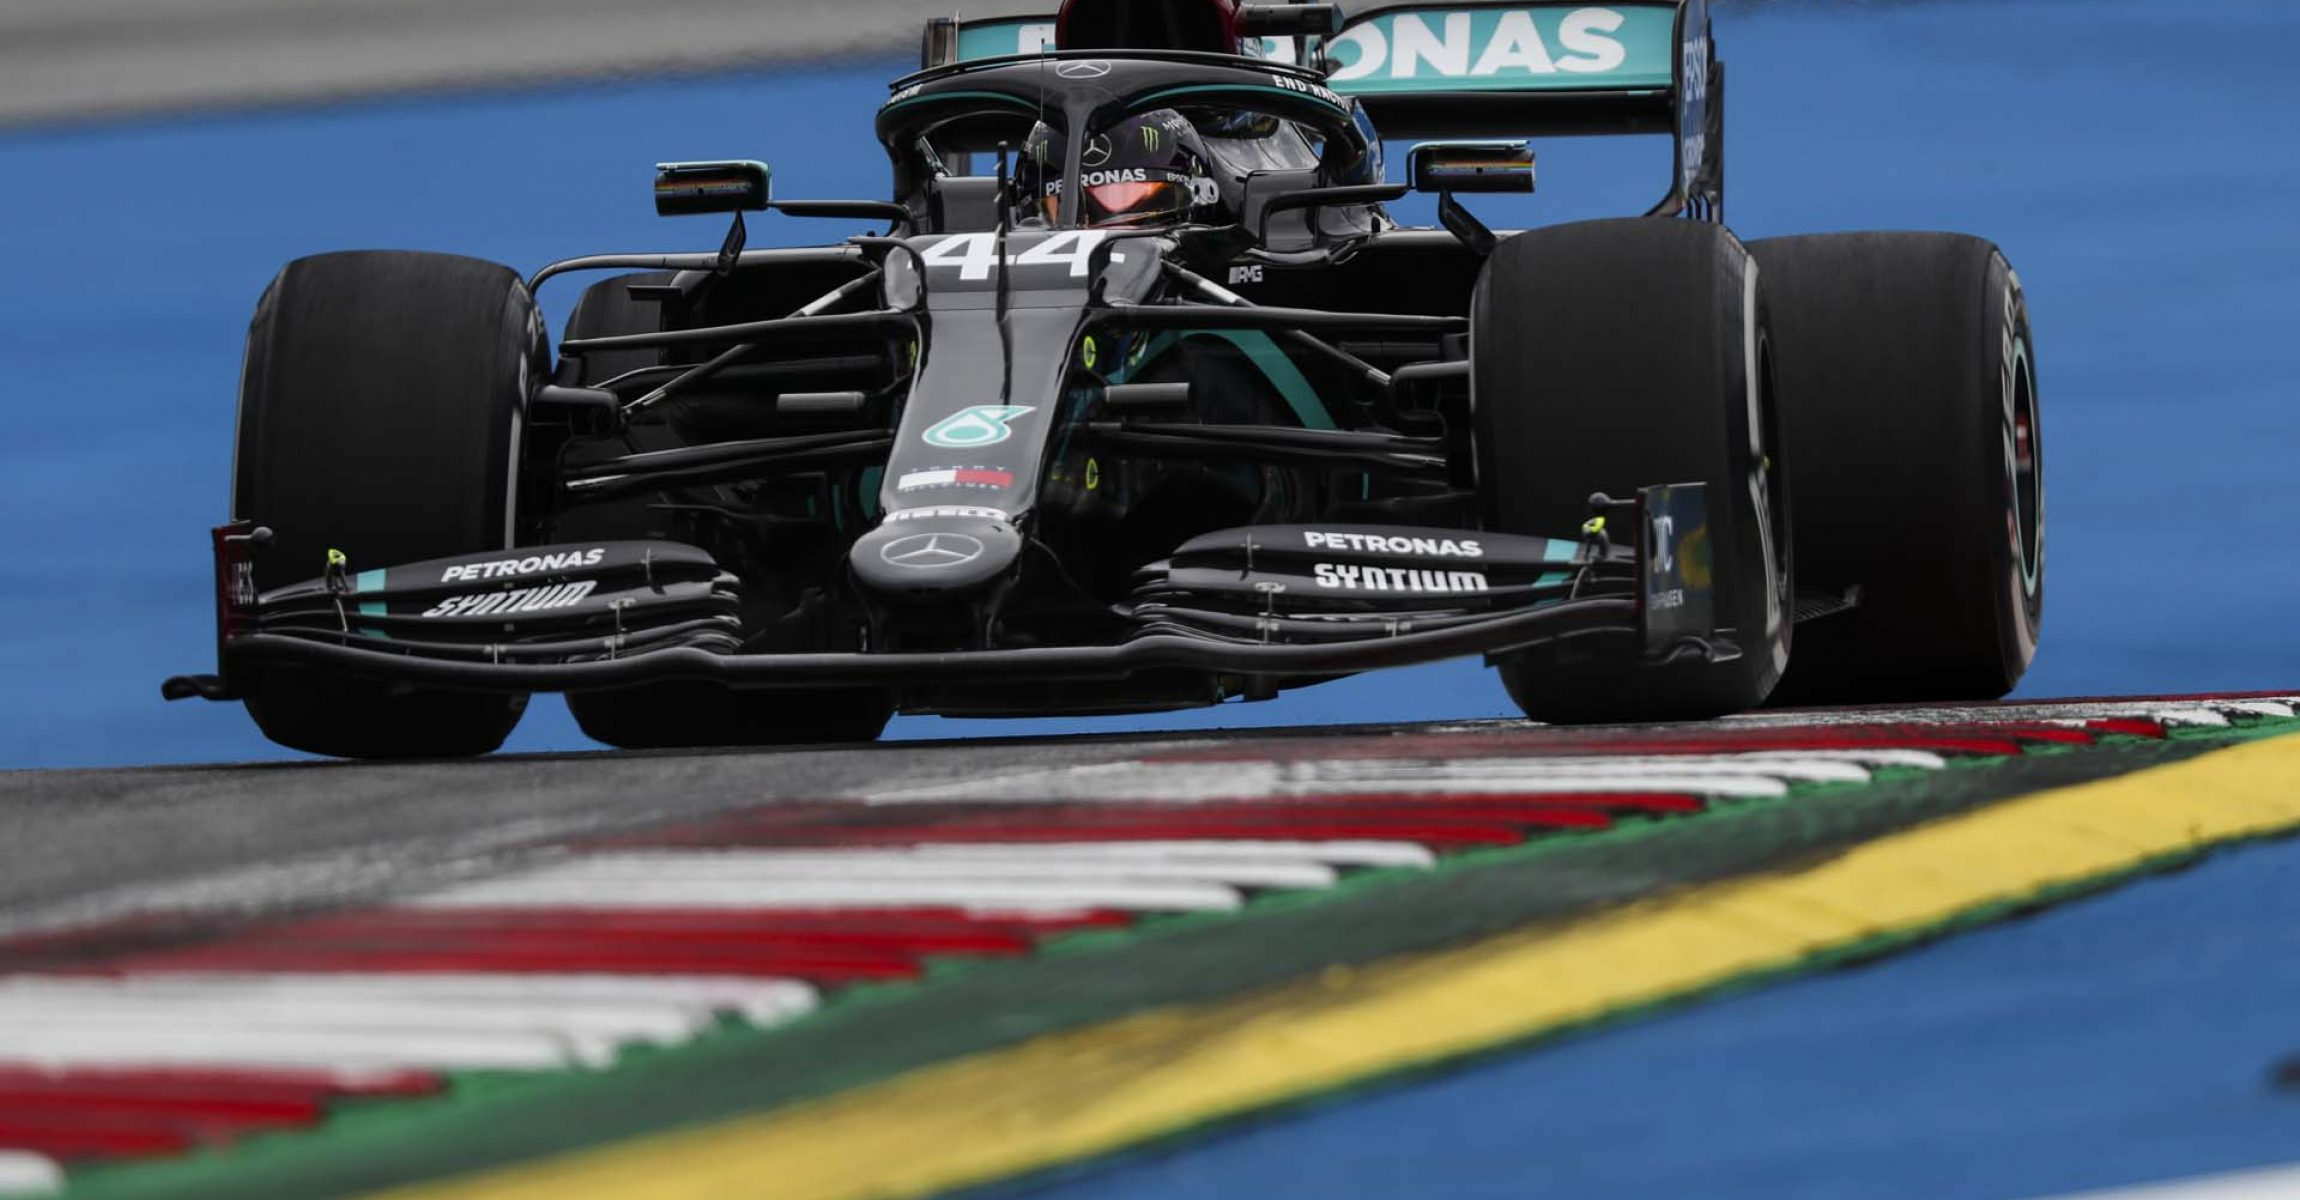 JULY 03: Lewis Hamilton, Mercedes F1 W11 EQ Performance during the Austrian GP on Friday July 03, 2020. (Photo by Charles Coates / LAT Images)